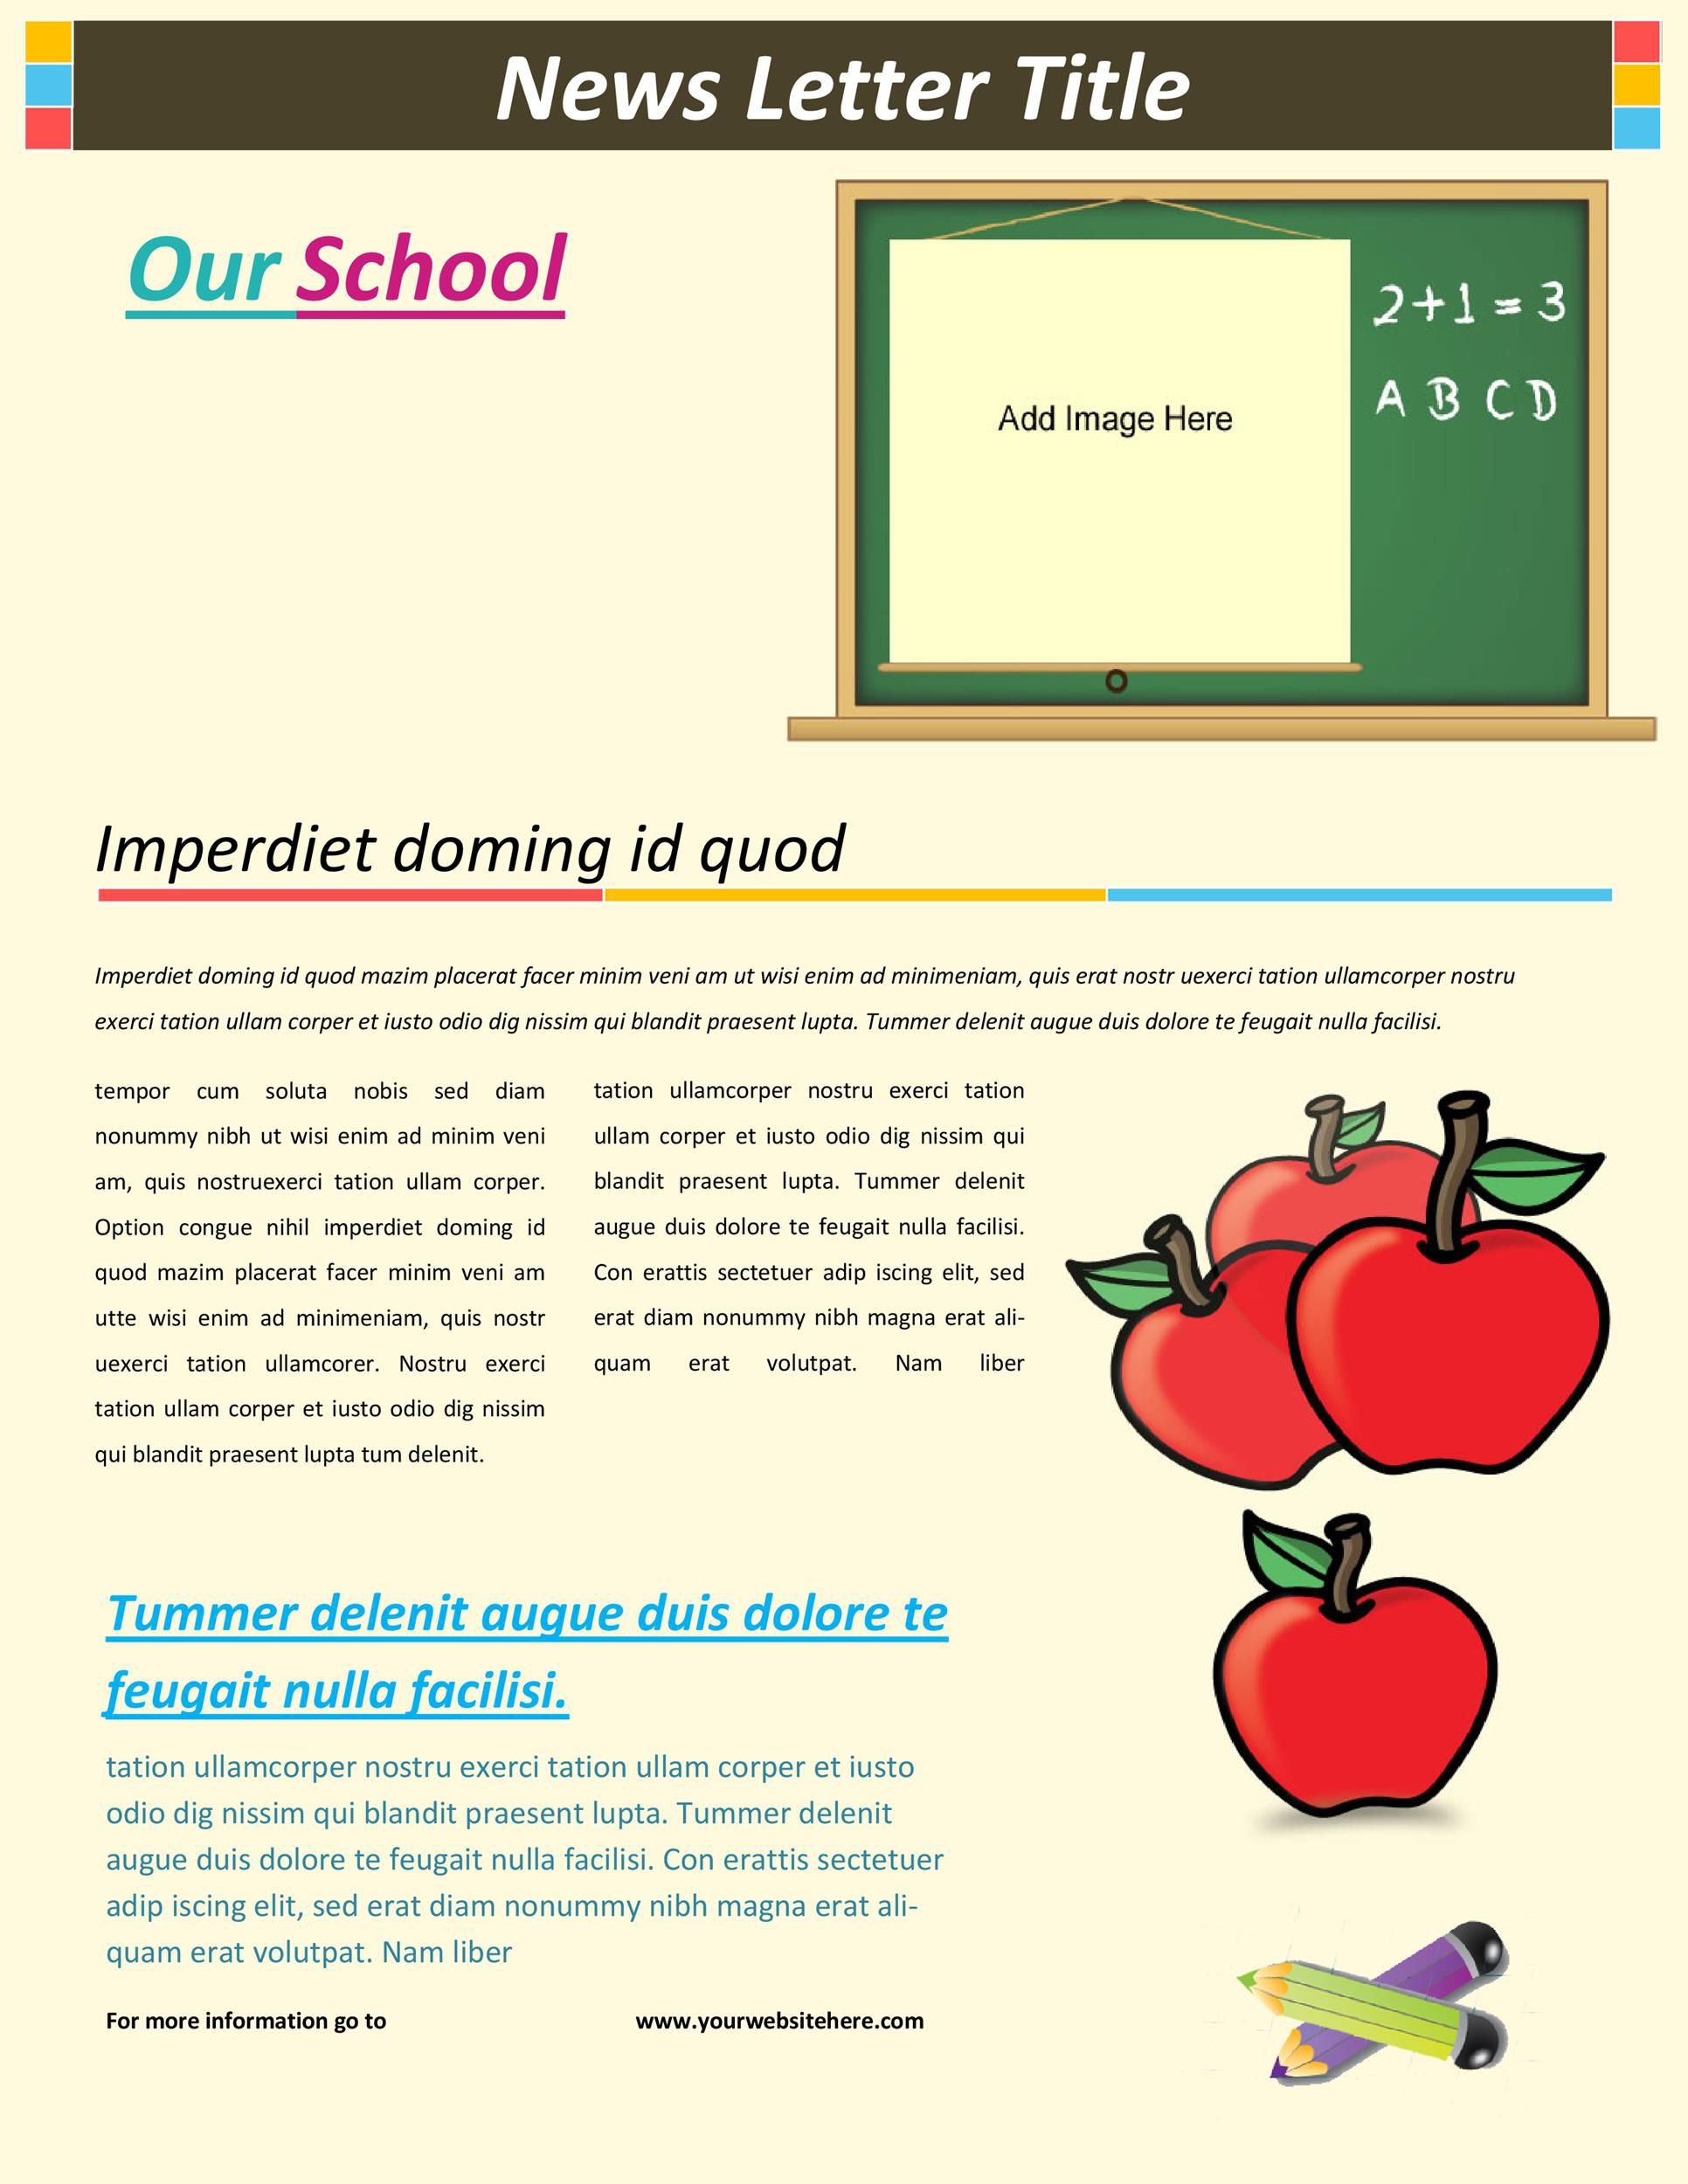 005 Simple School Newsletter Template Word Concept  Free Classroom For MicrosoftFull